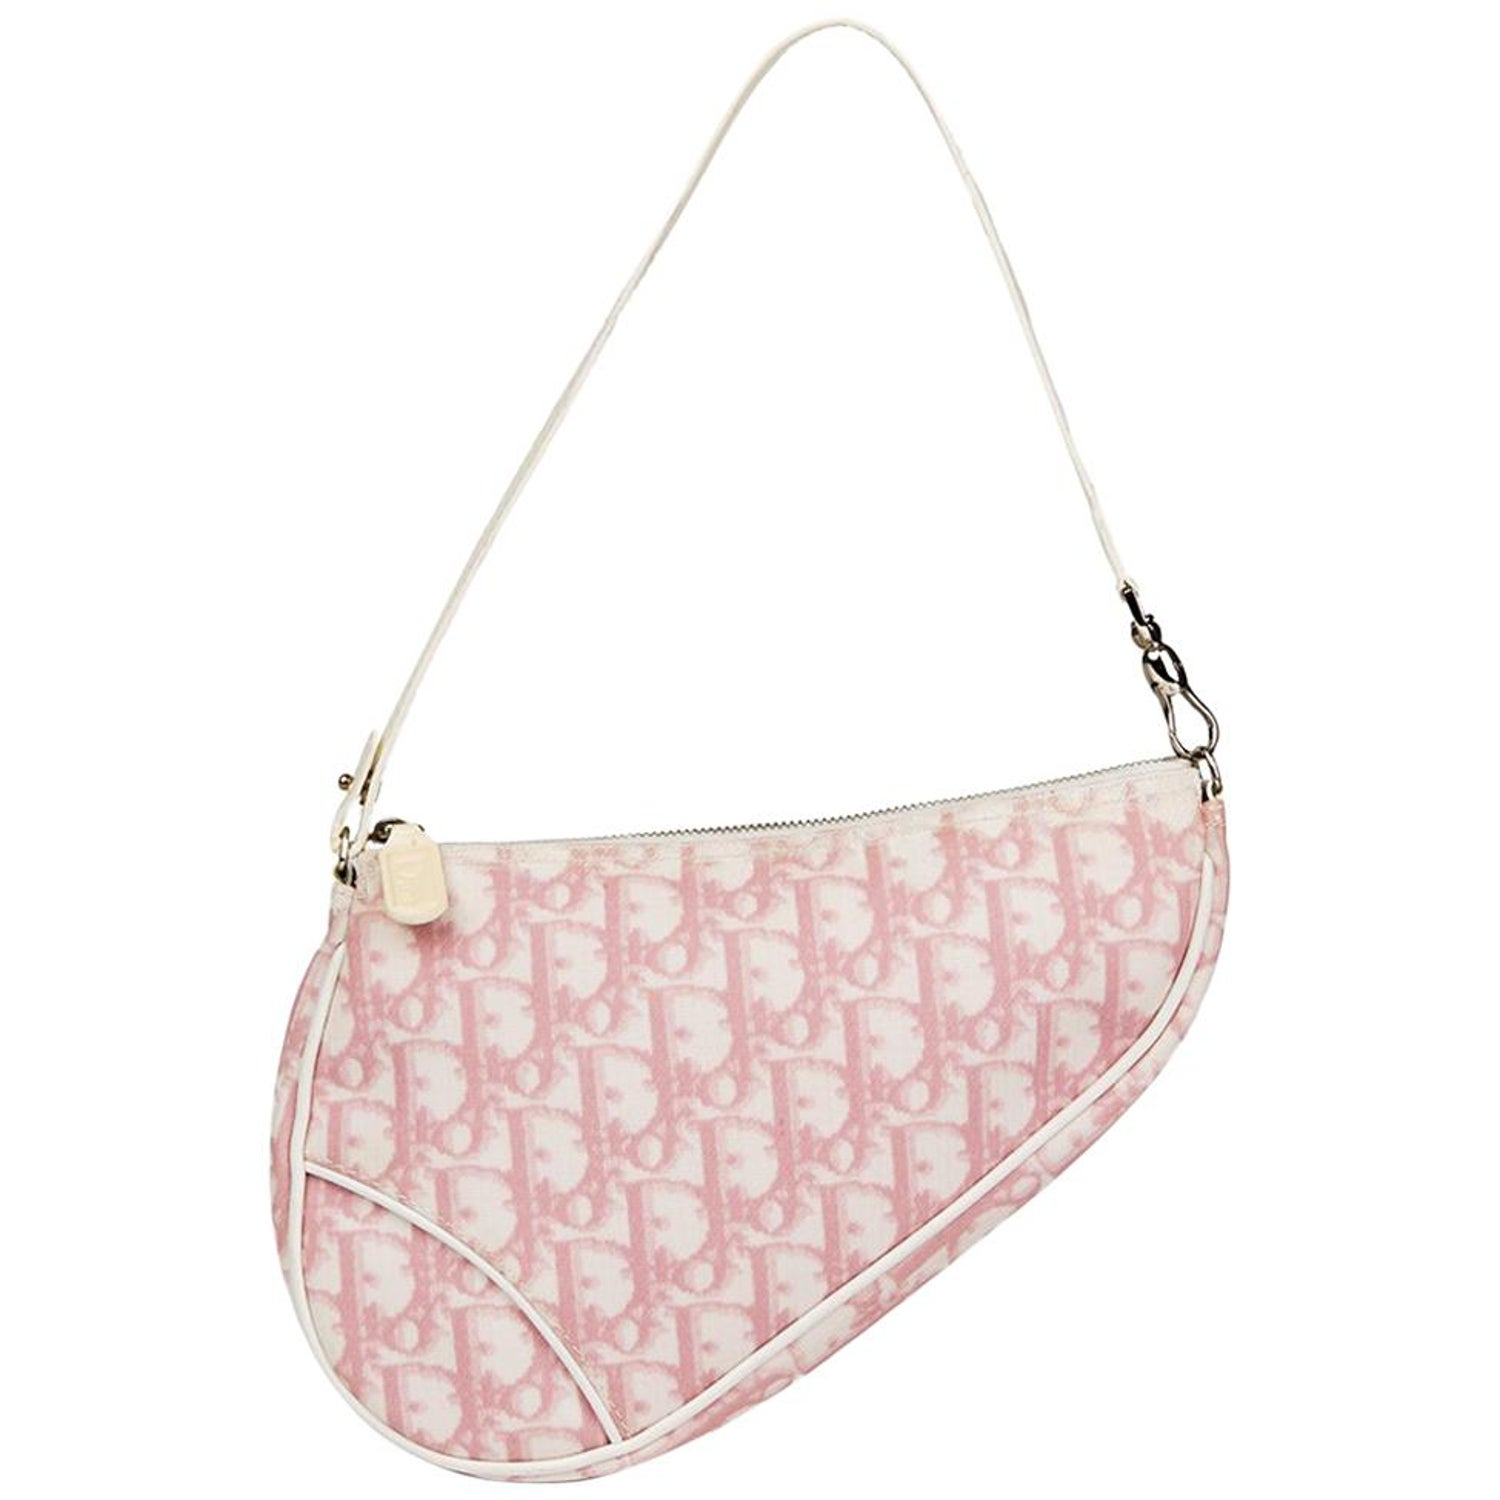 406c09524f 2004 Christian Dior Pink Monogram Canvas Saddle Pouch at 1stdibs